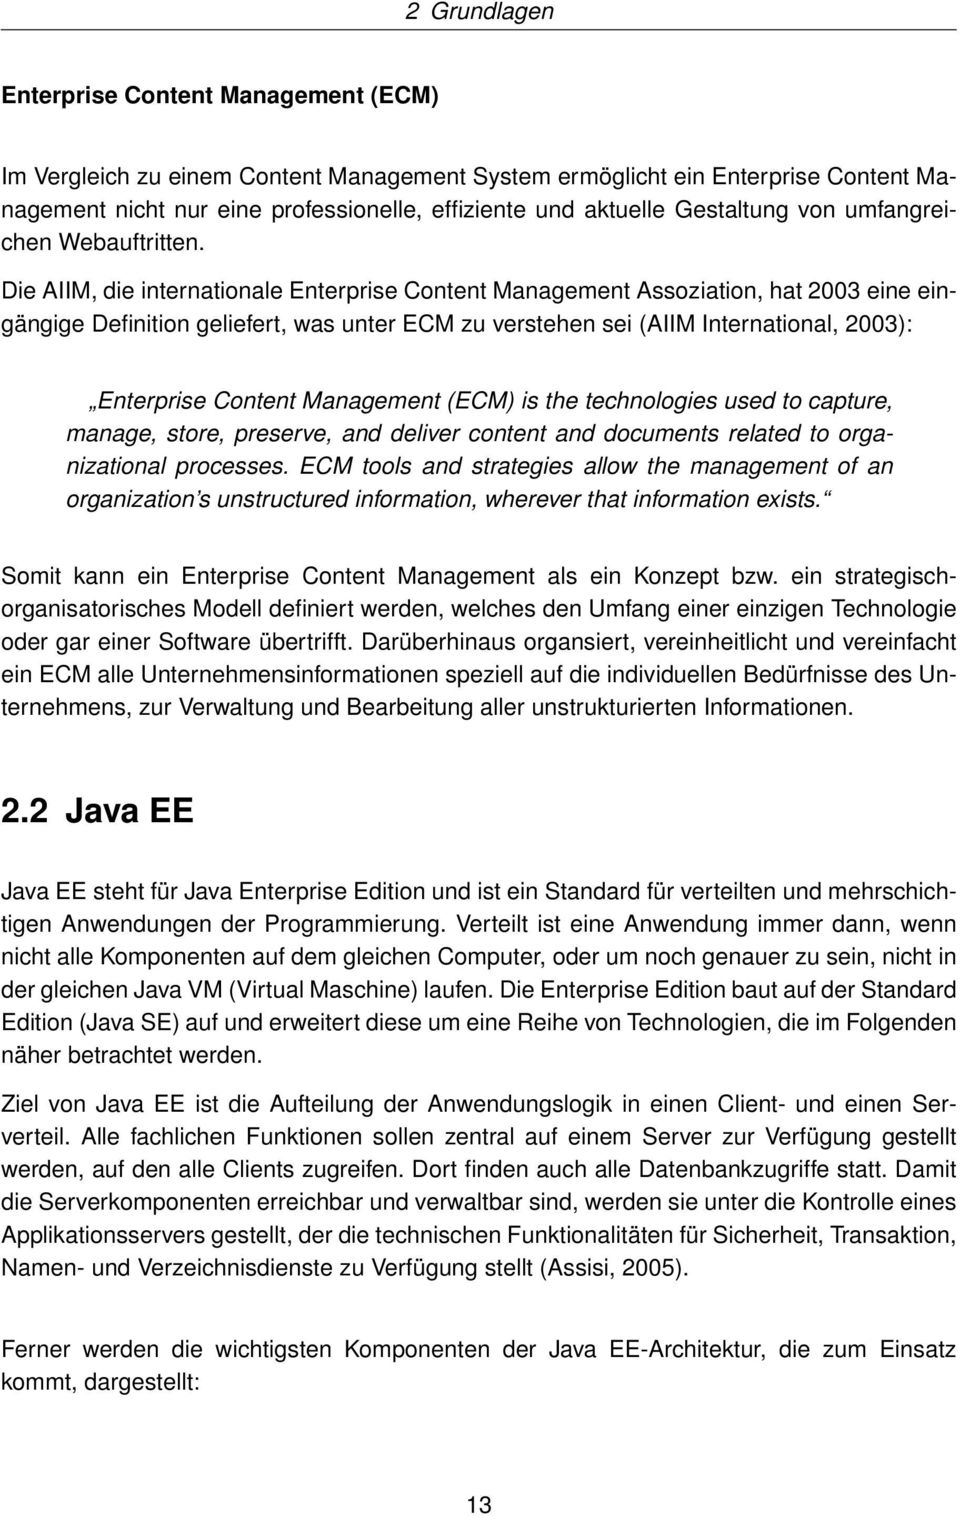 Die AIIM, die internationale Enterprise Content Management Assoziation, hat 2003 eine eingängige Definition geliefert, was unter ECM zu verstehen sei (AIIM International, 2003): Enterprise Content